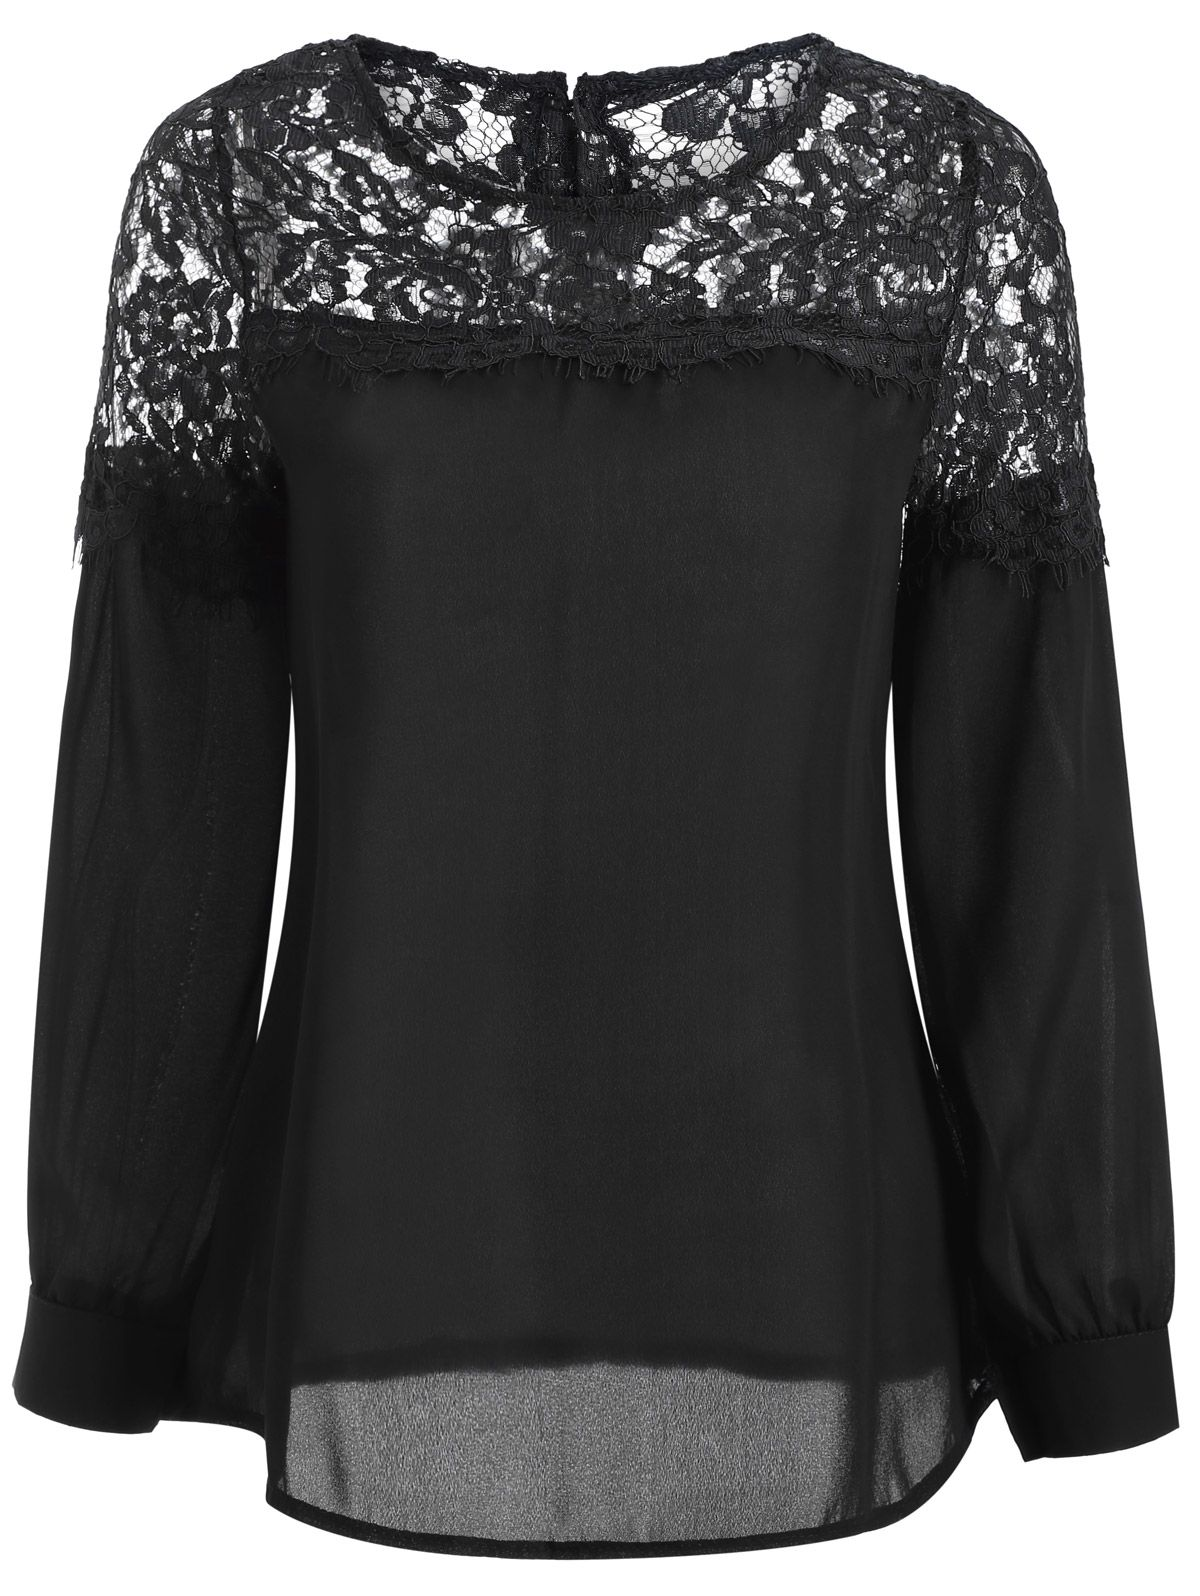 1a6dd5be7d Sheer Lace Yoke Blouse | Shirts and Skirts in 2019 | Sheer lace top ...